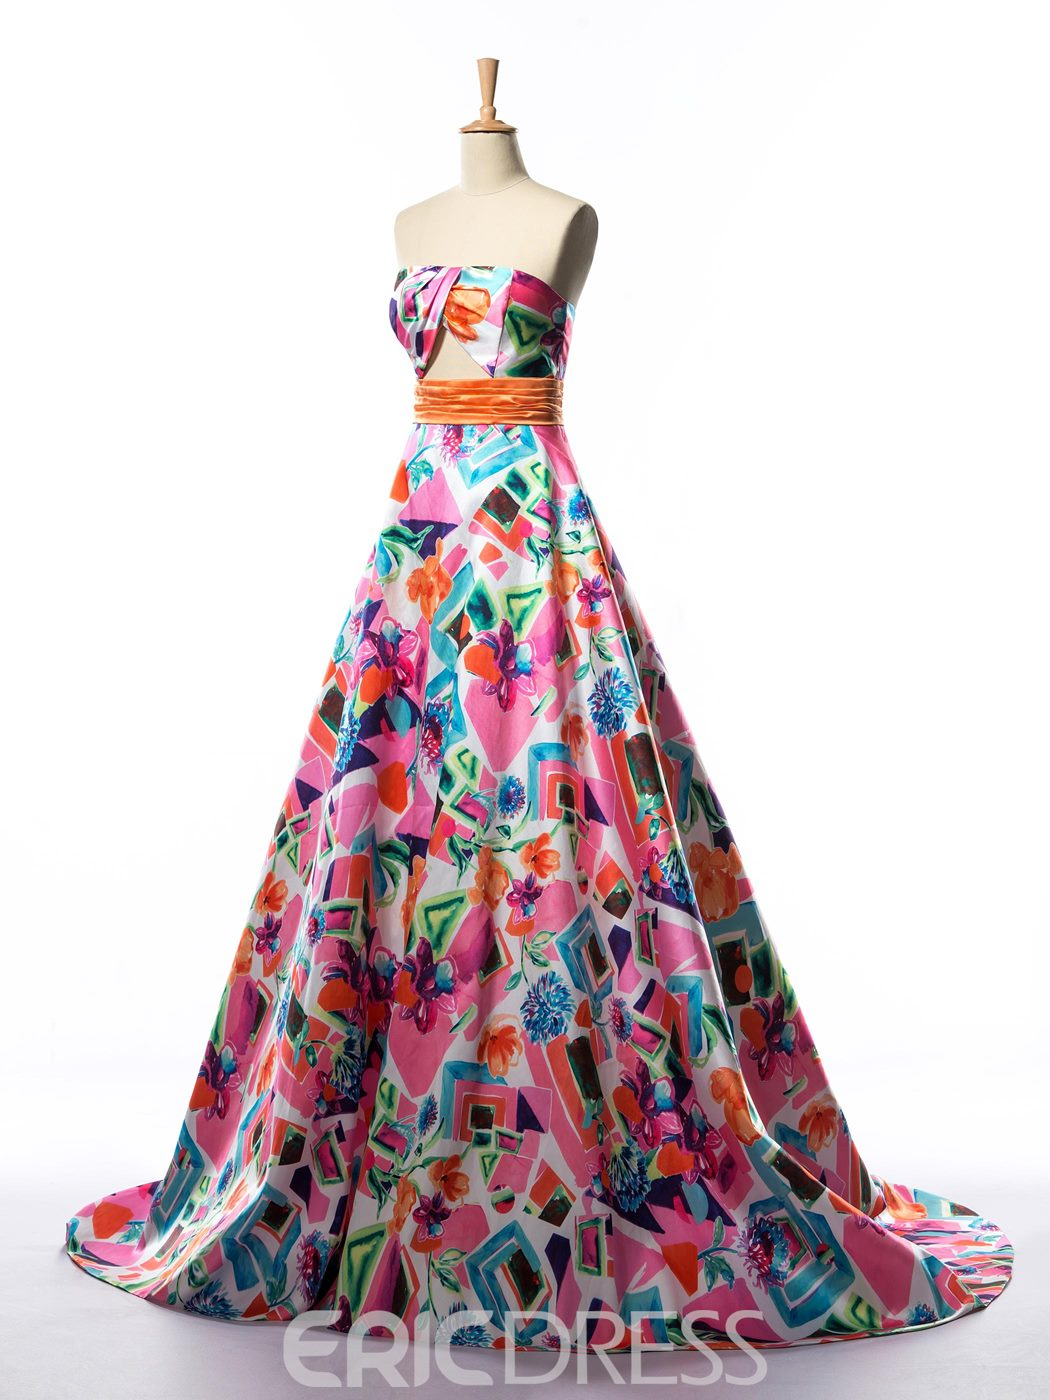 Ericdress A-Line Strapless Hollow Print Prom Dress